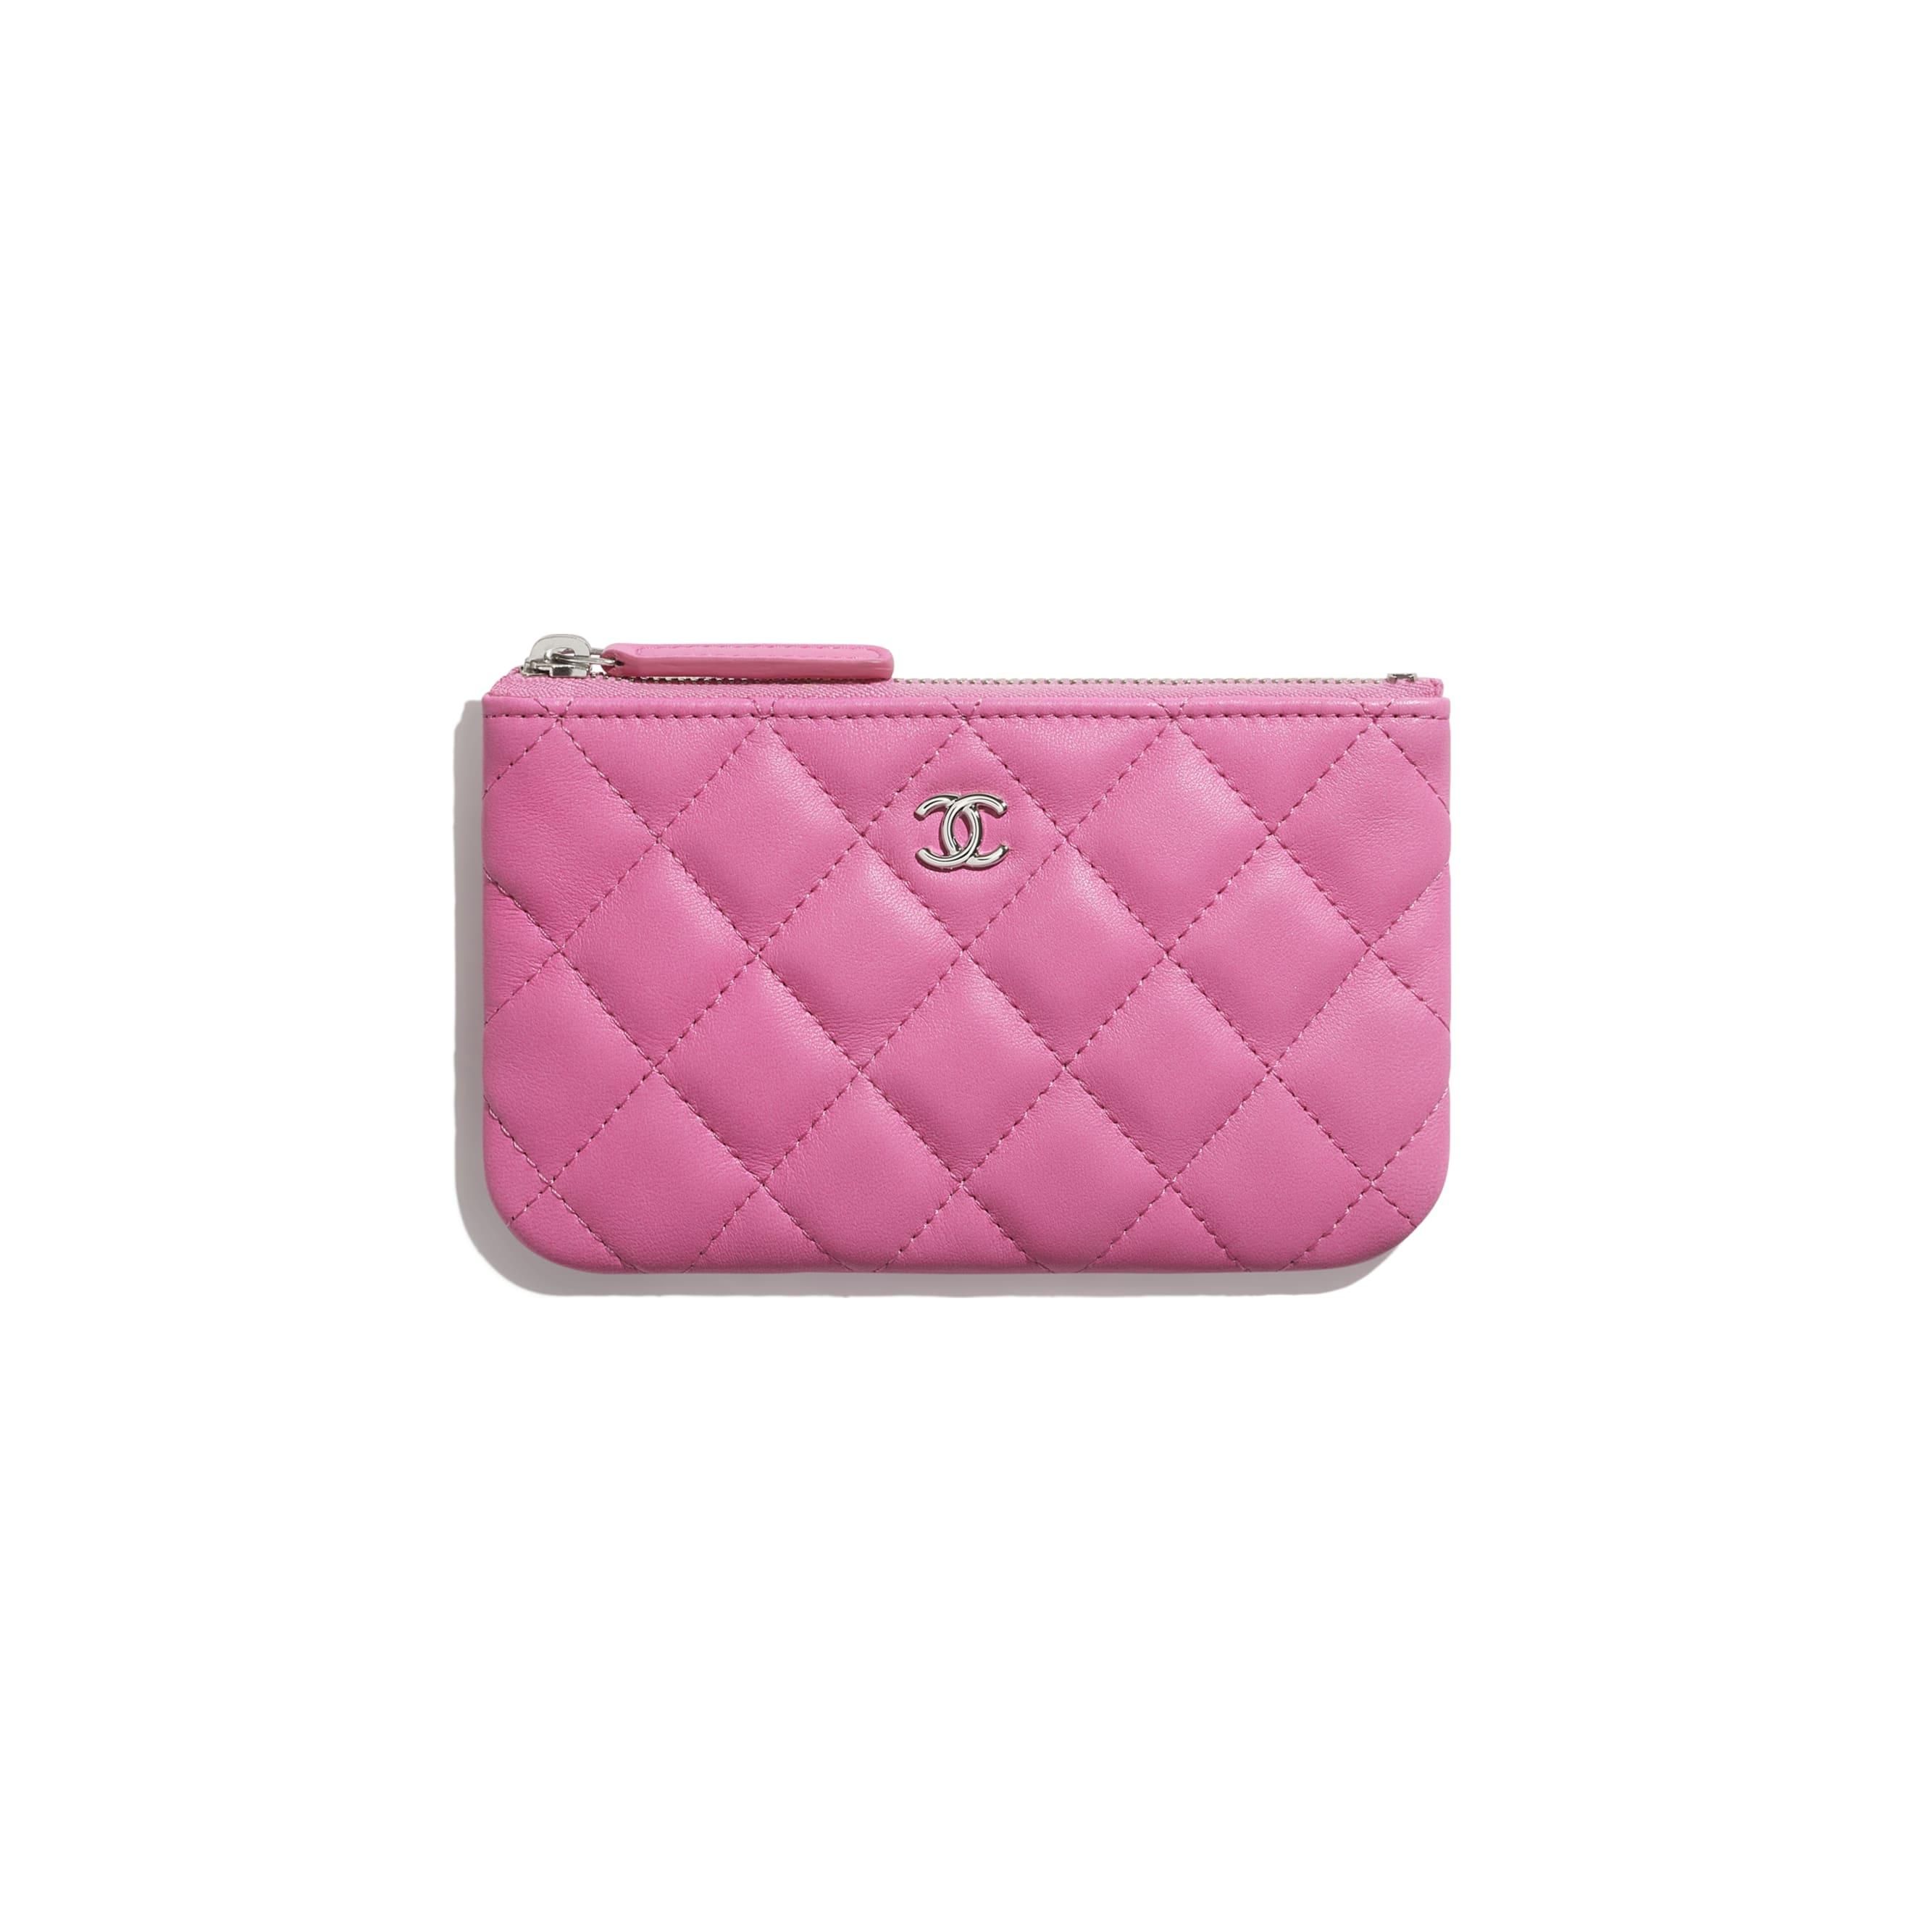 Classic Mini Pouch - Neon Pink - Lambskin - CHANEL - Default view - see standard sized version